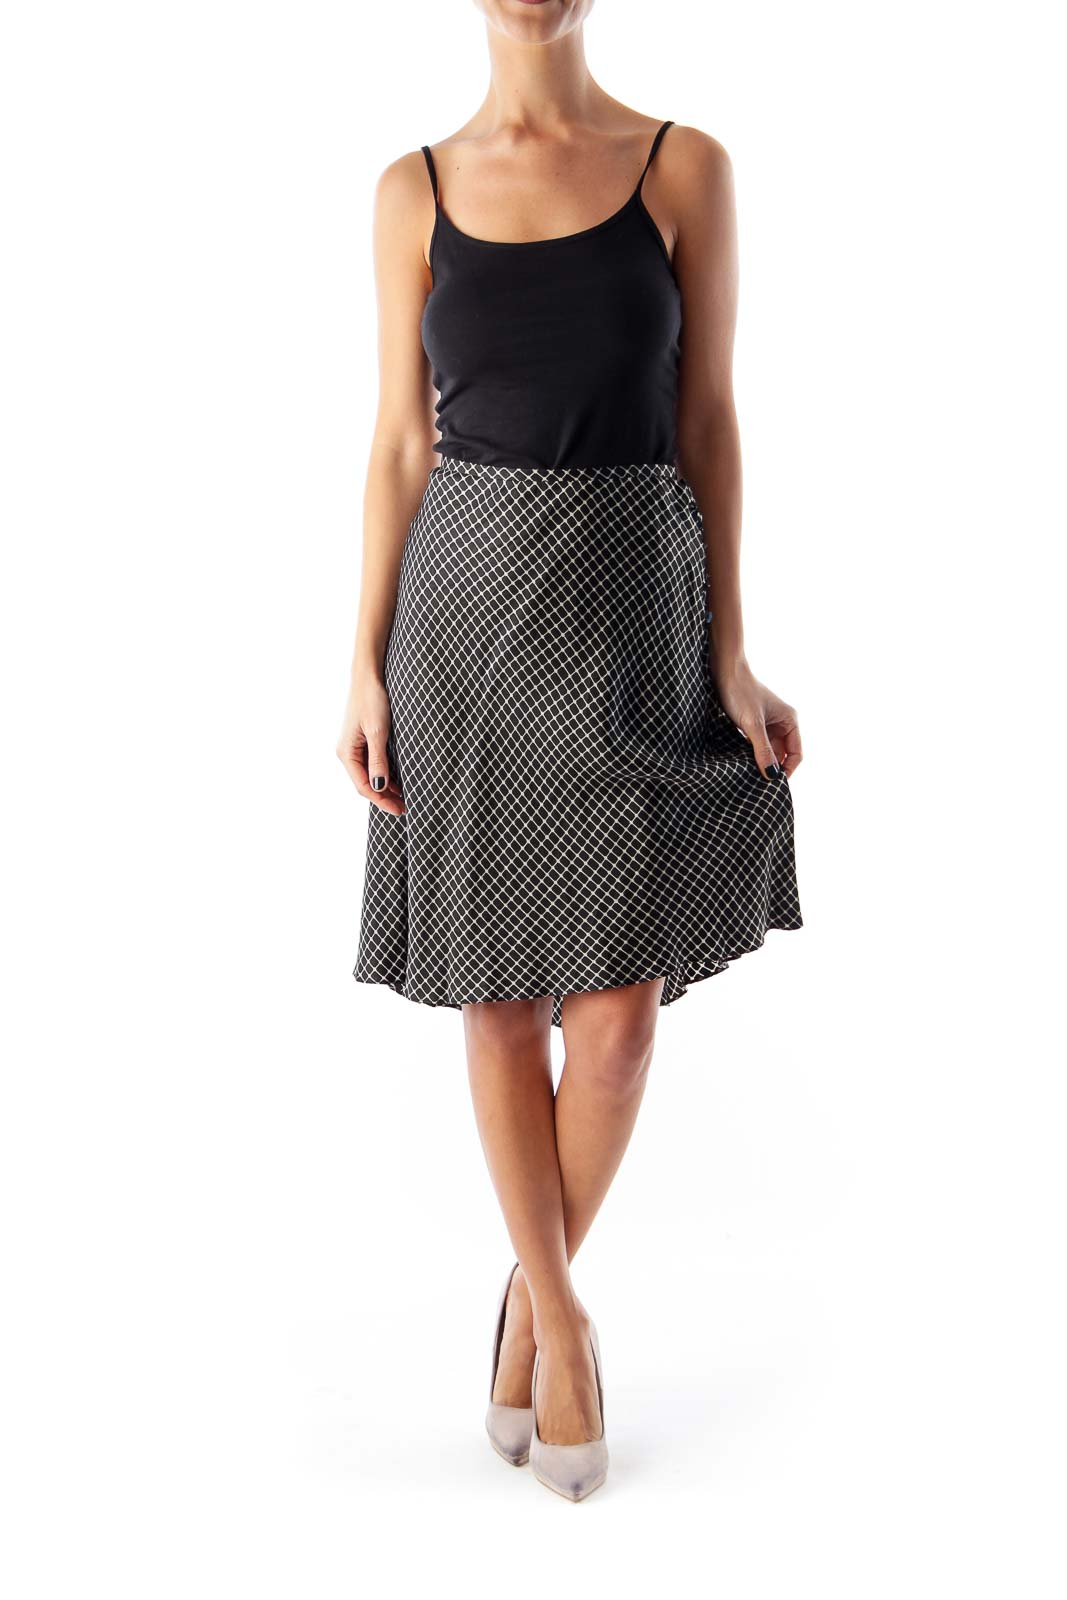 Black & Gray Print Skirt